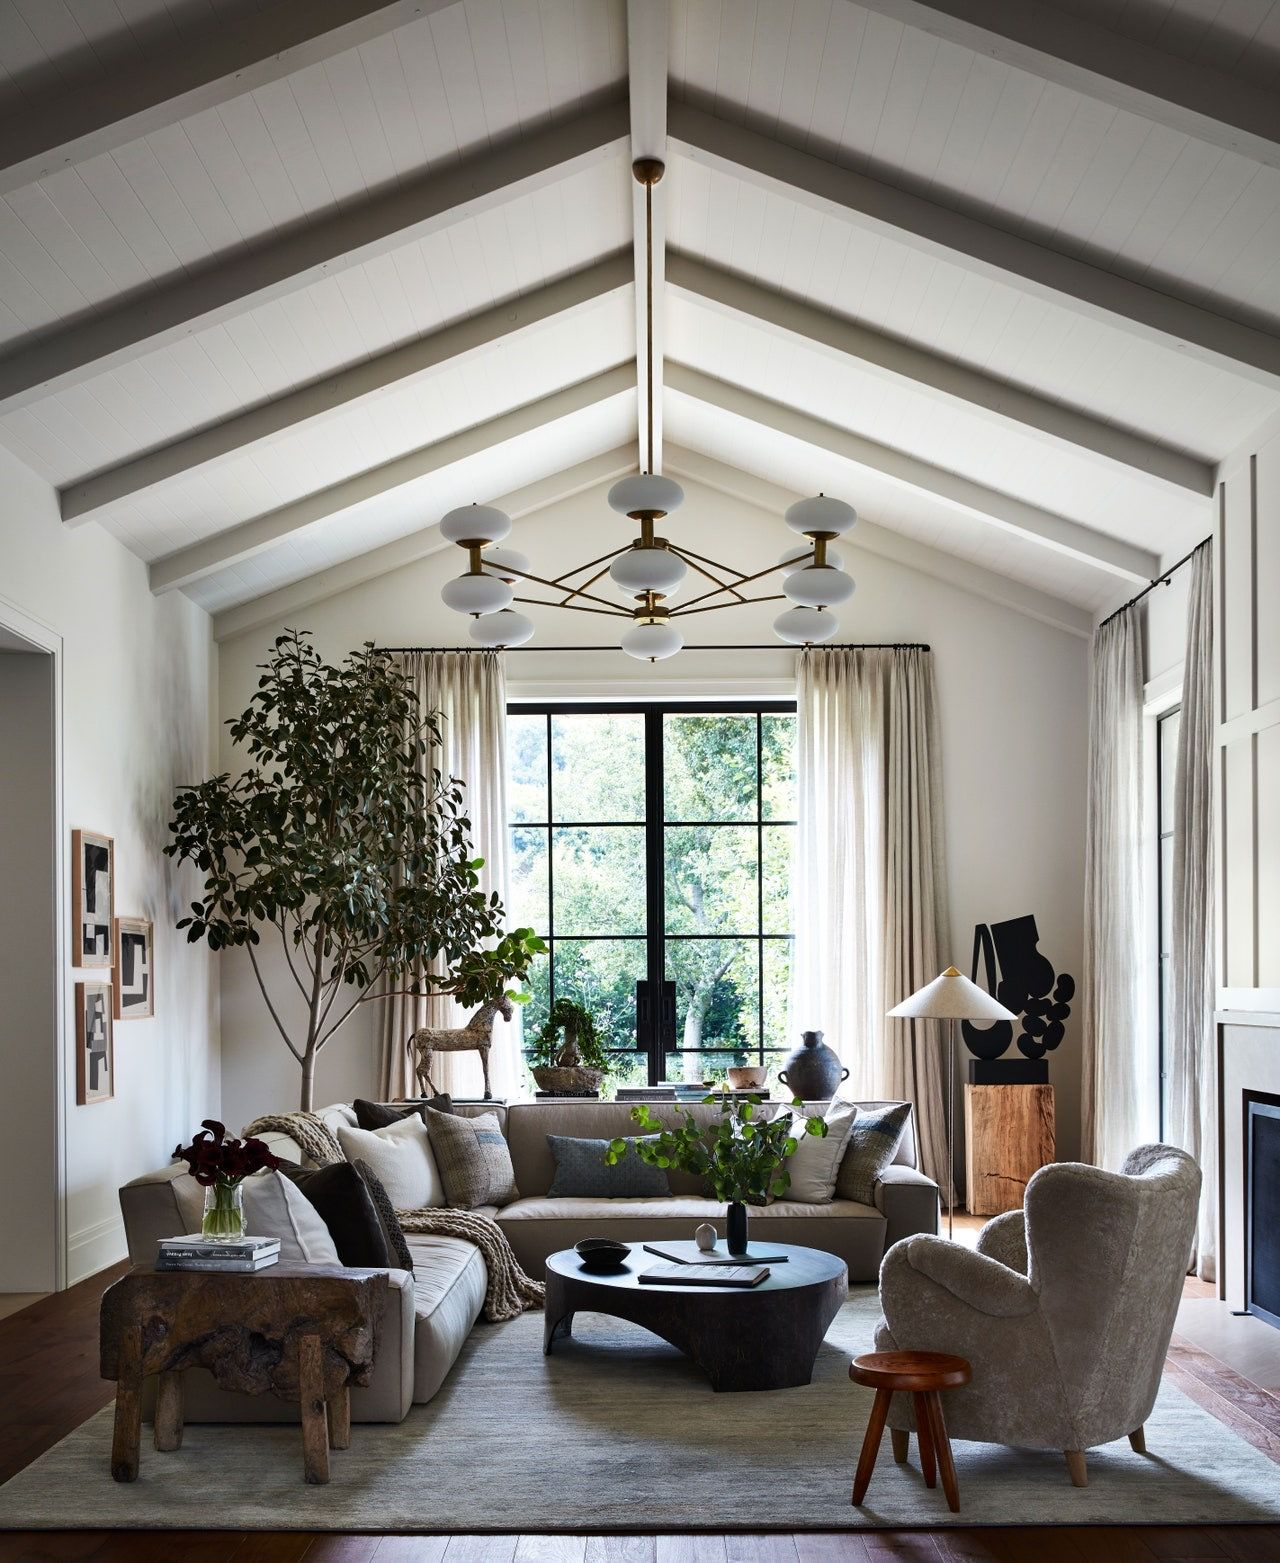 Pin By Jenica Williamson On Dublin Road In 2020 Rich Home Home Decor Home